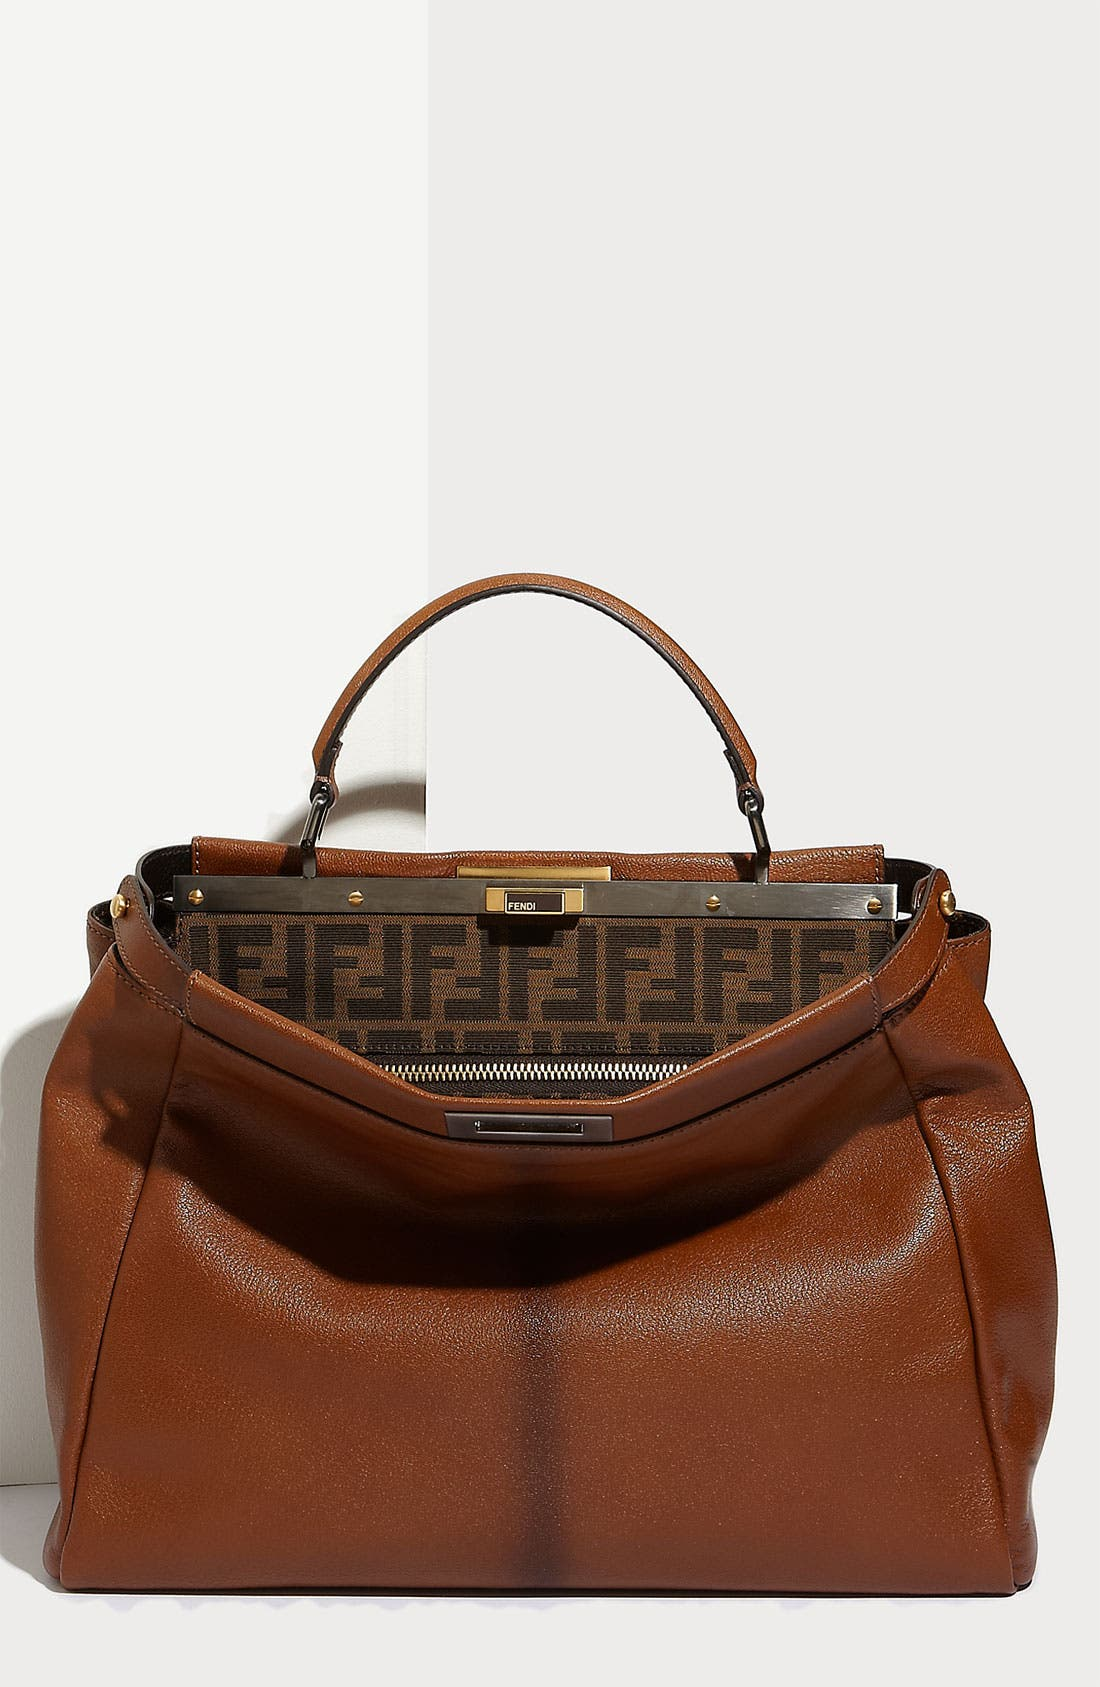 Main Image - Fendi 'Peekaboo - Large' Goatskin Leather Satchel